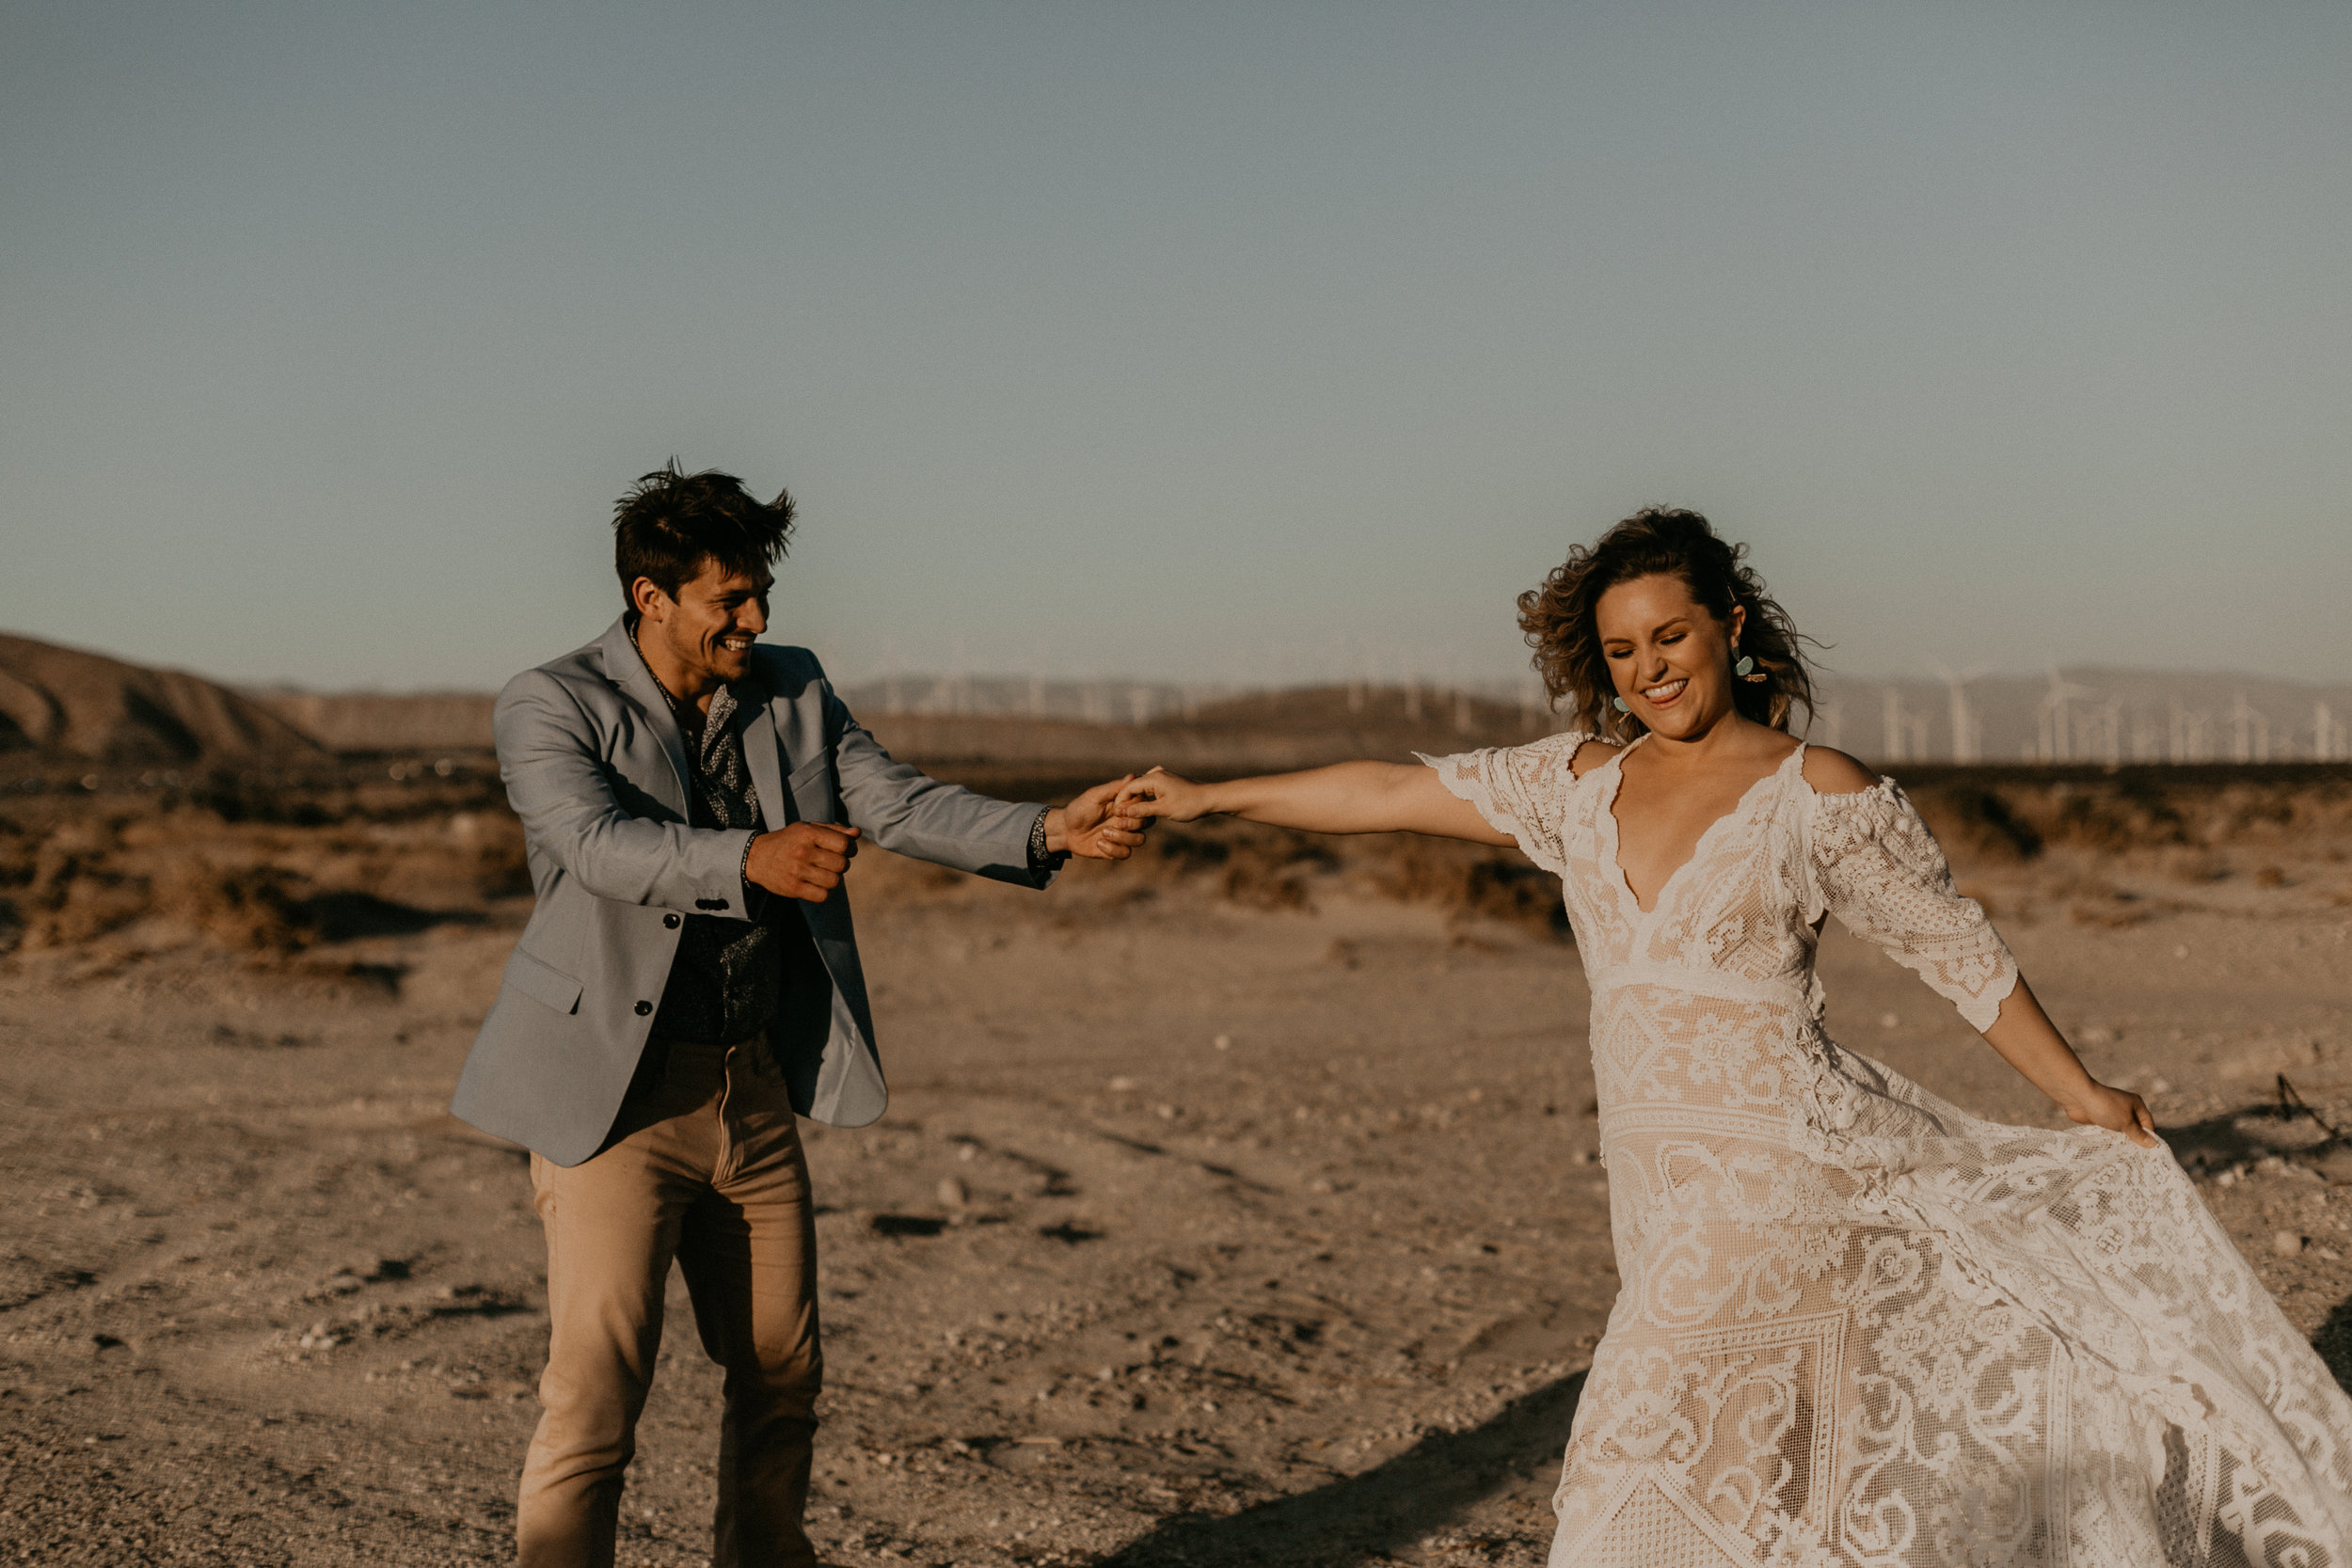 Palm Springs Boho Desert Elopement - Portland Oregon Wedding and Elopement Photographer